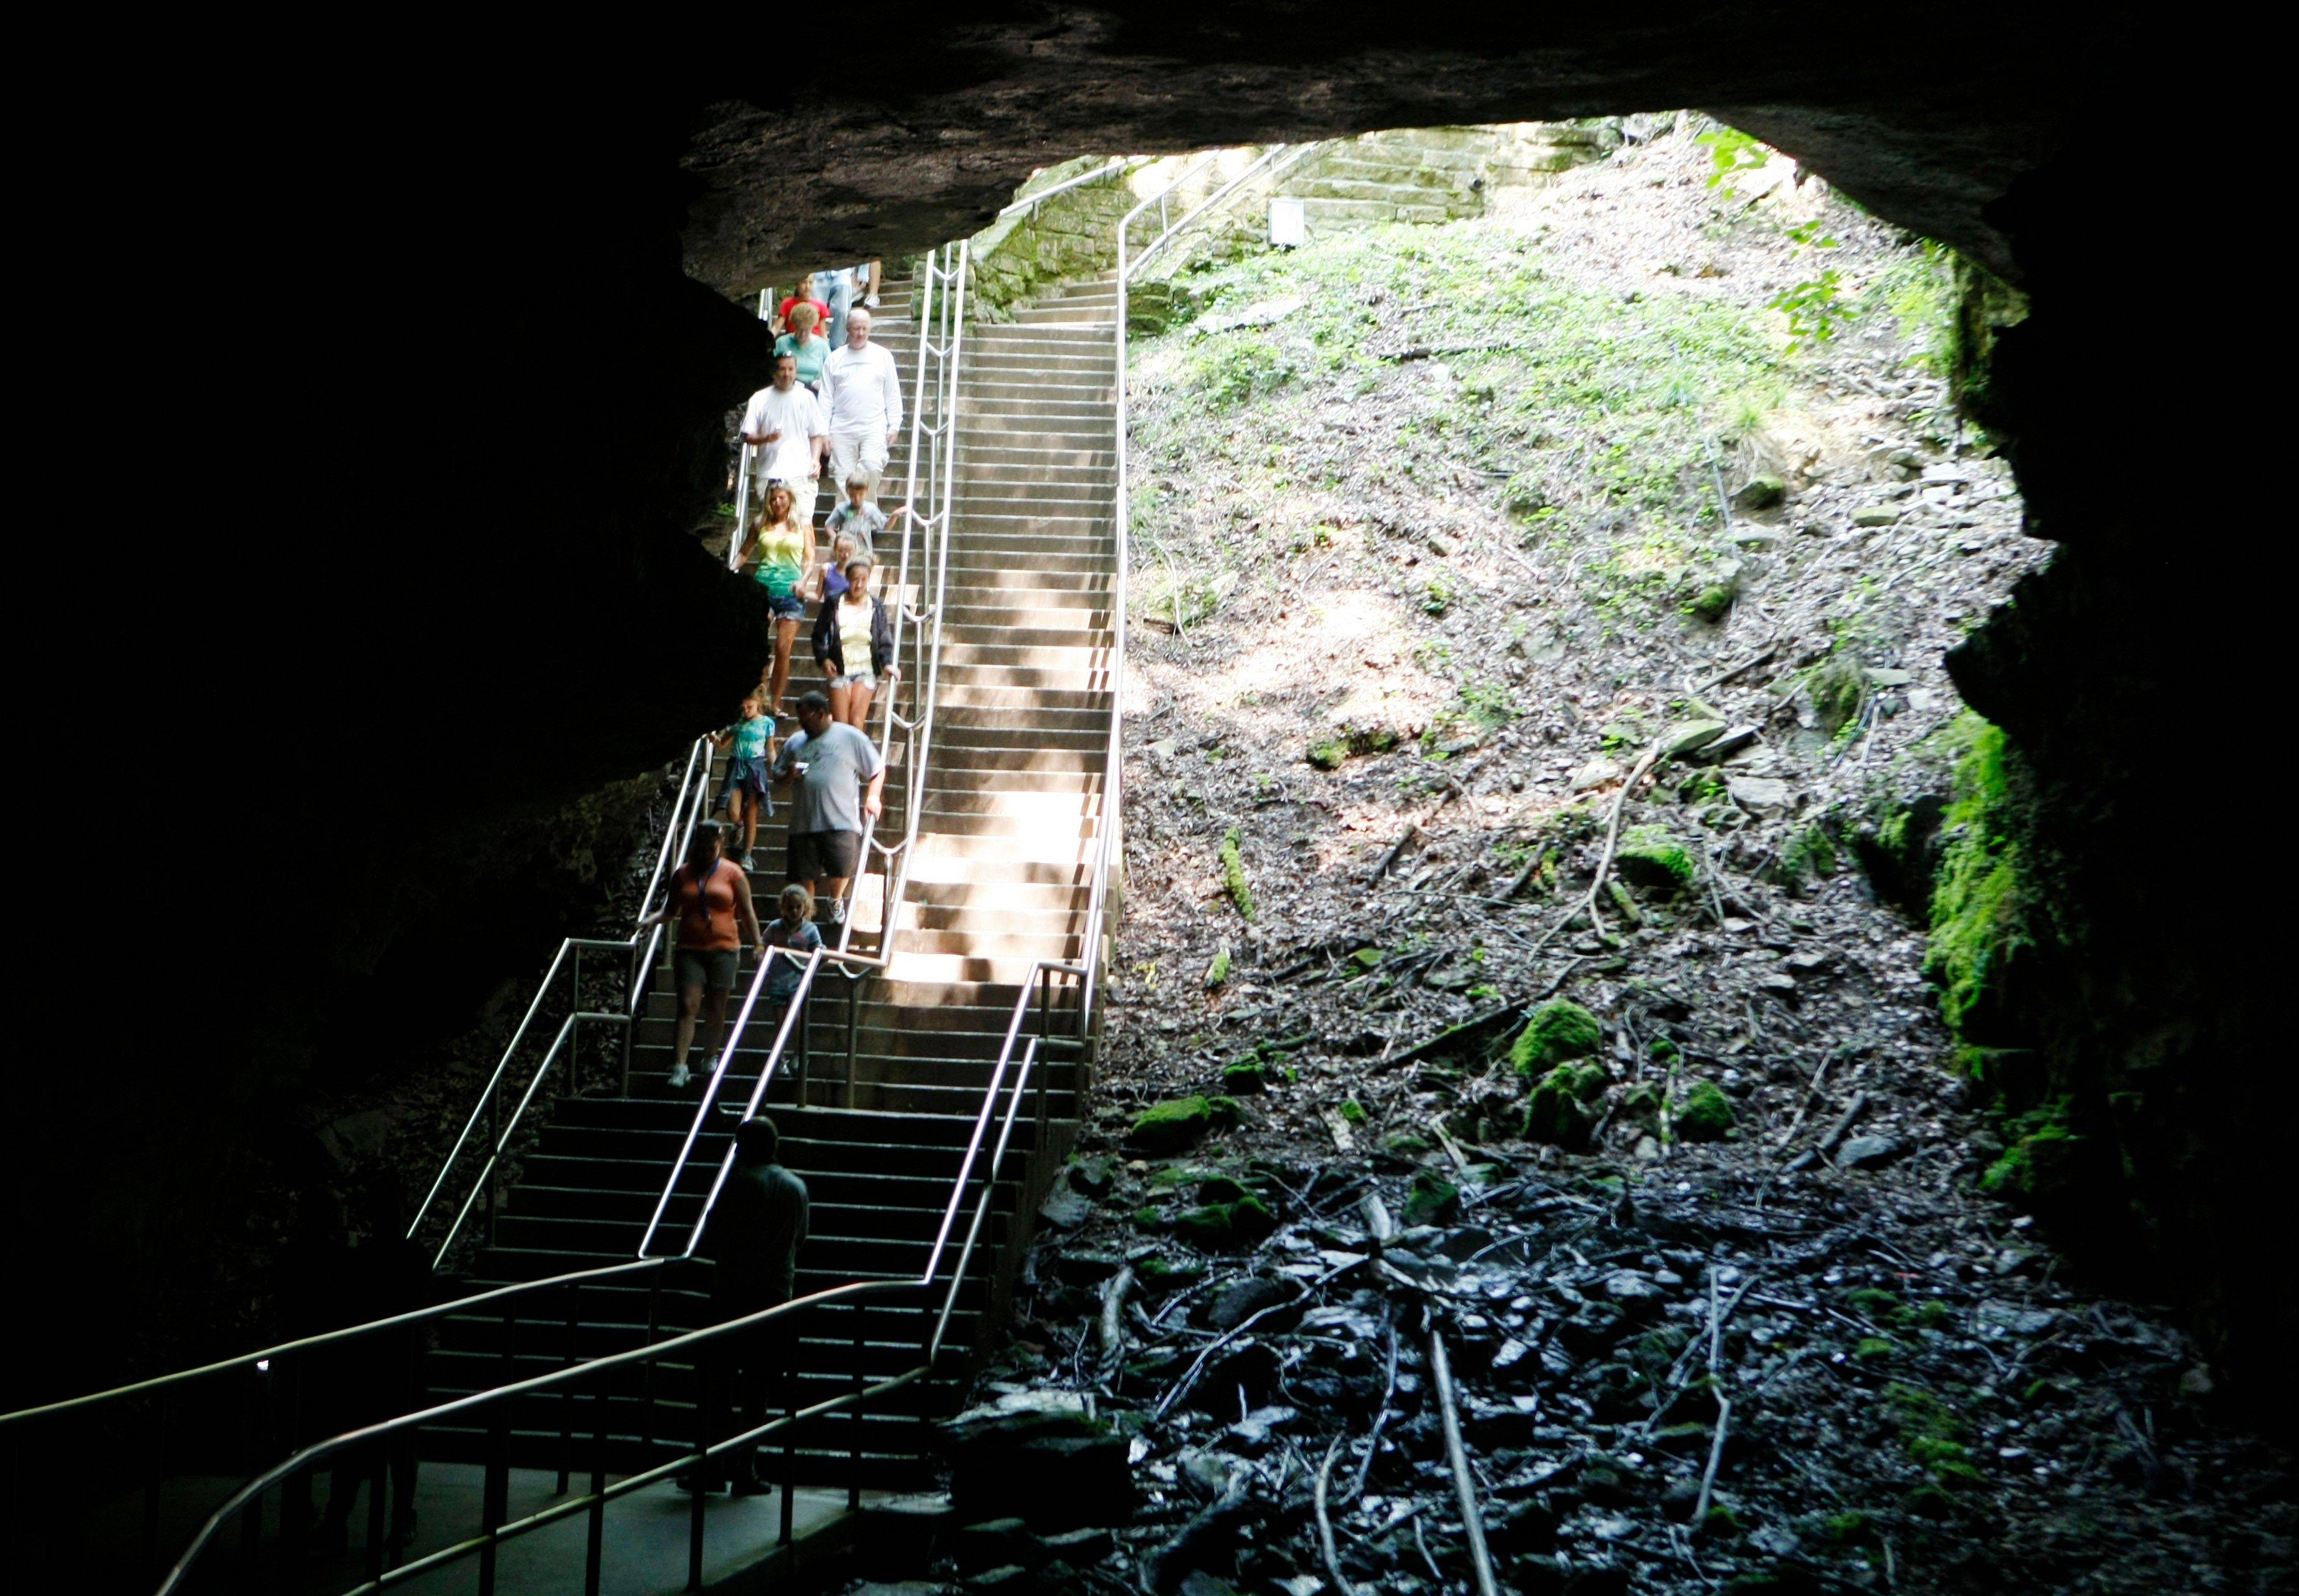 Tour participants enter Mammoth Cave in Mammoth Cave National Park, Ky. The celebrated cave that has lured the curious for thousands of years remains a temperate 54 degrees year-round.